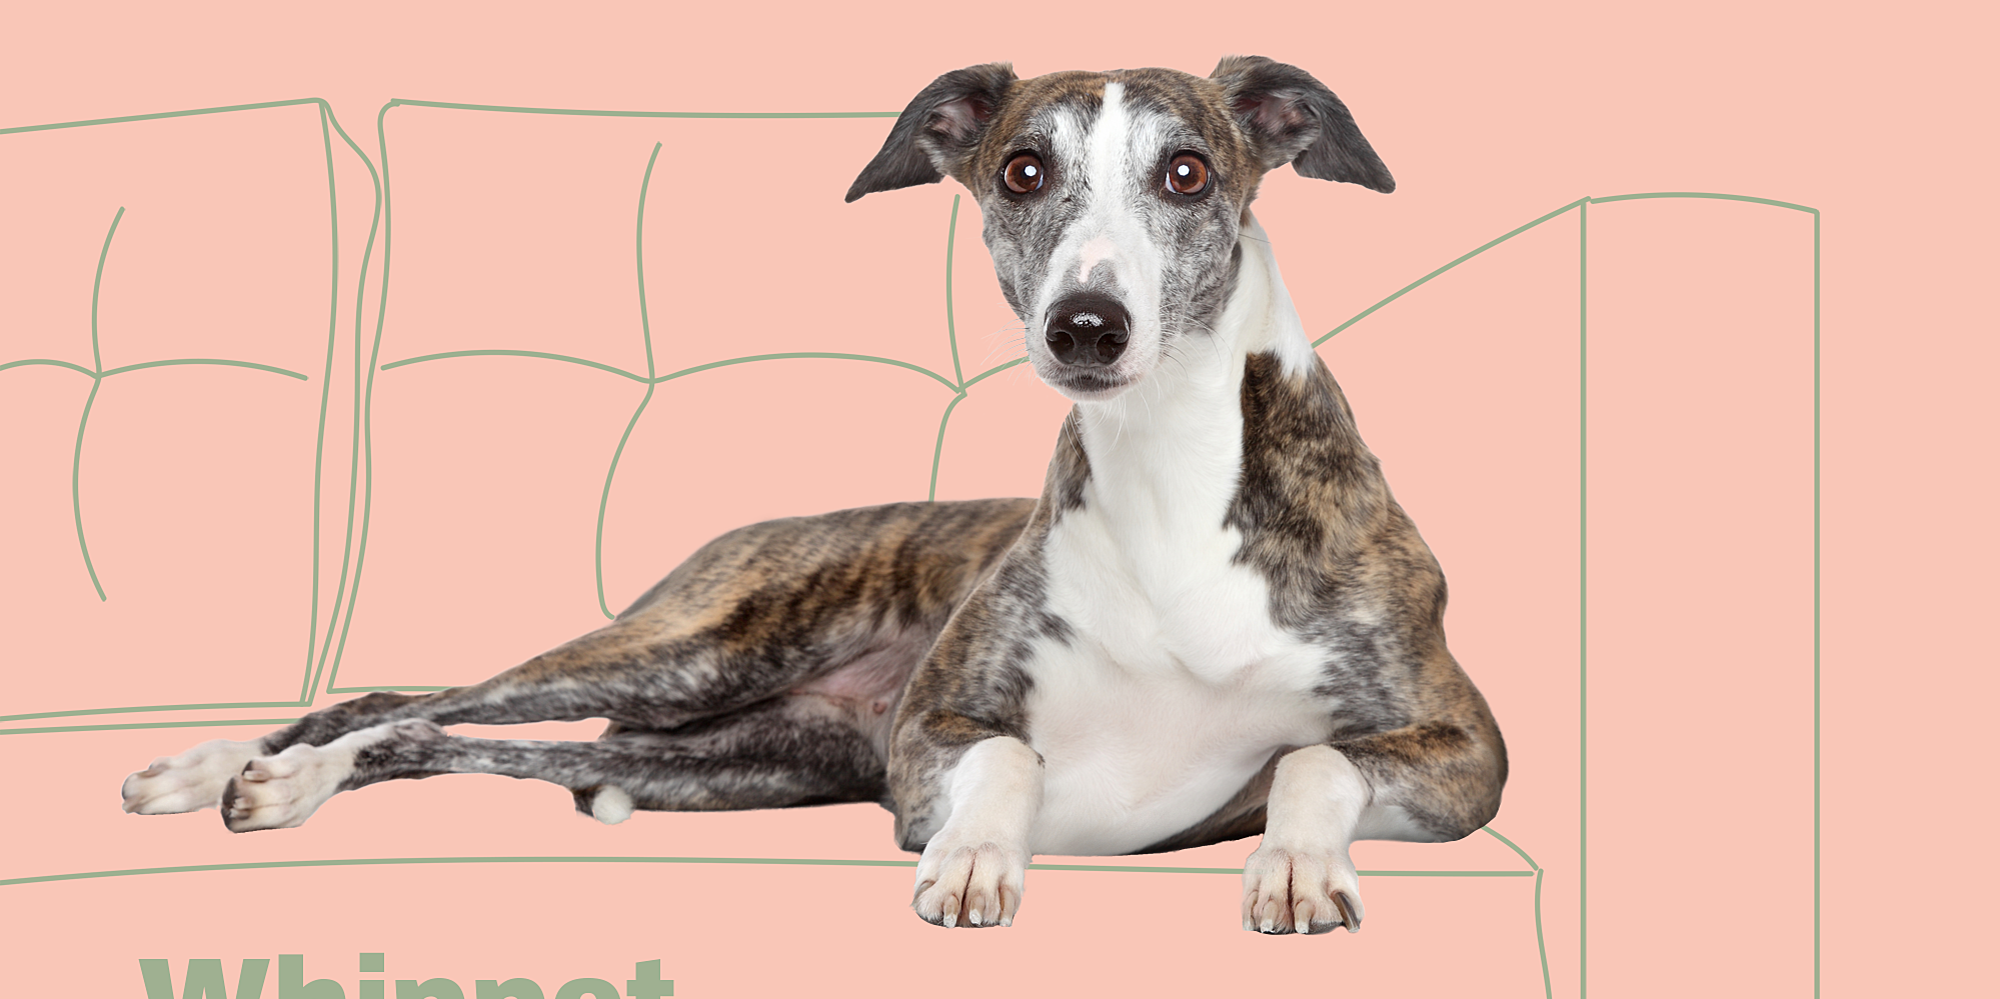 Look Alikes: Can You Tell the Differences in These 11 Sets of Dog Breeds?